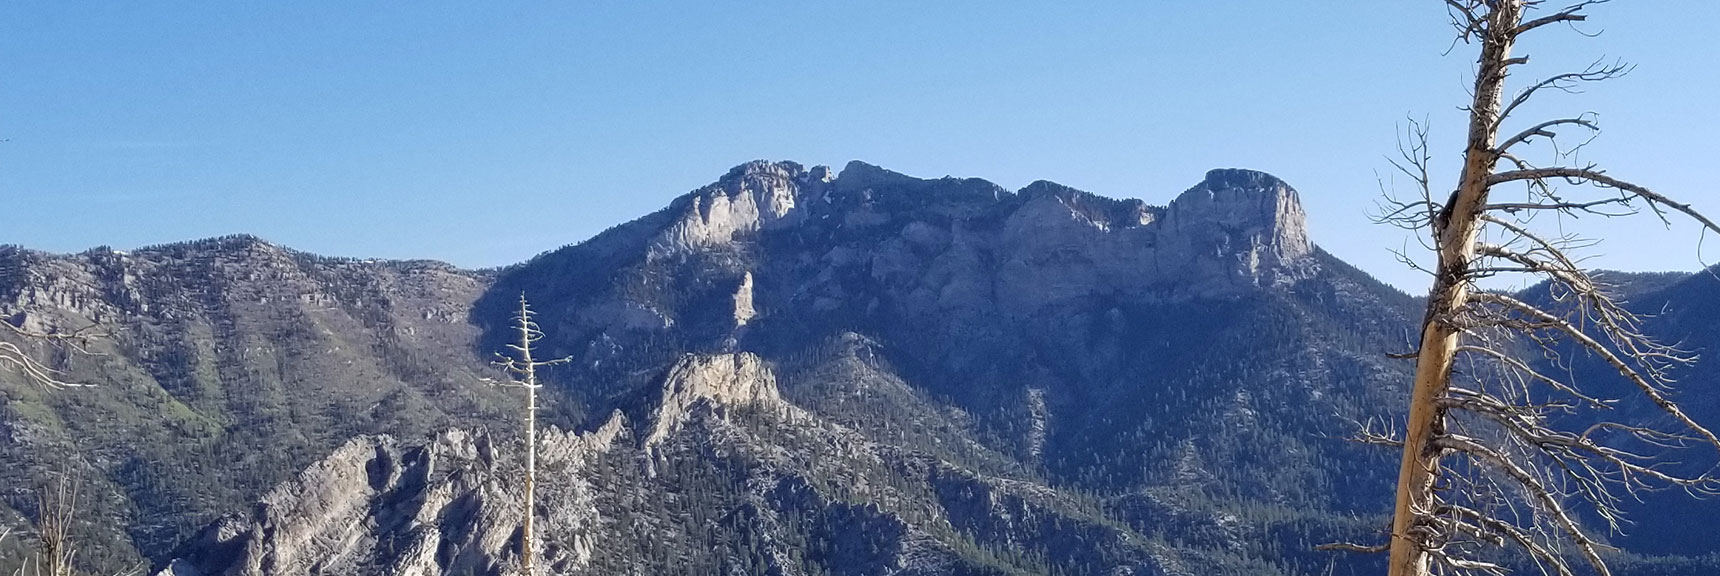 Mummy Mt Viewed from South Climb Trail to Mt. Charleston